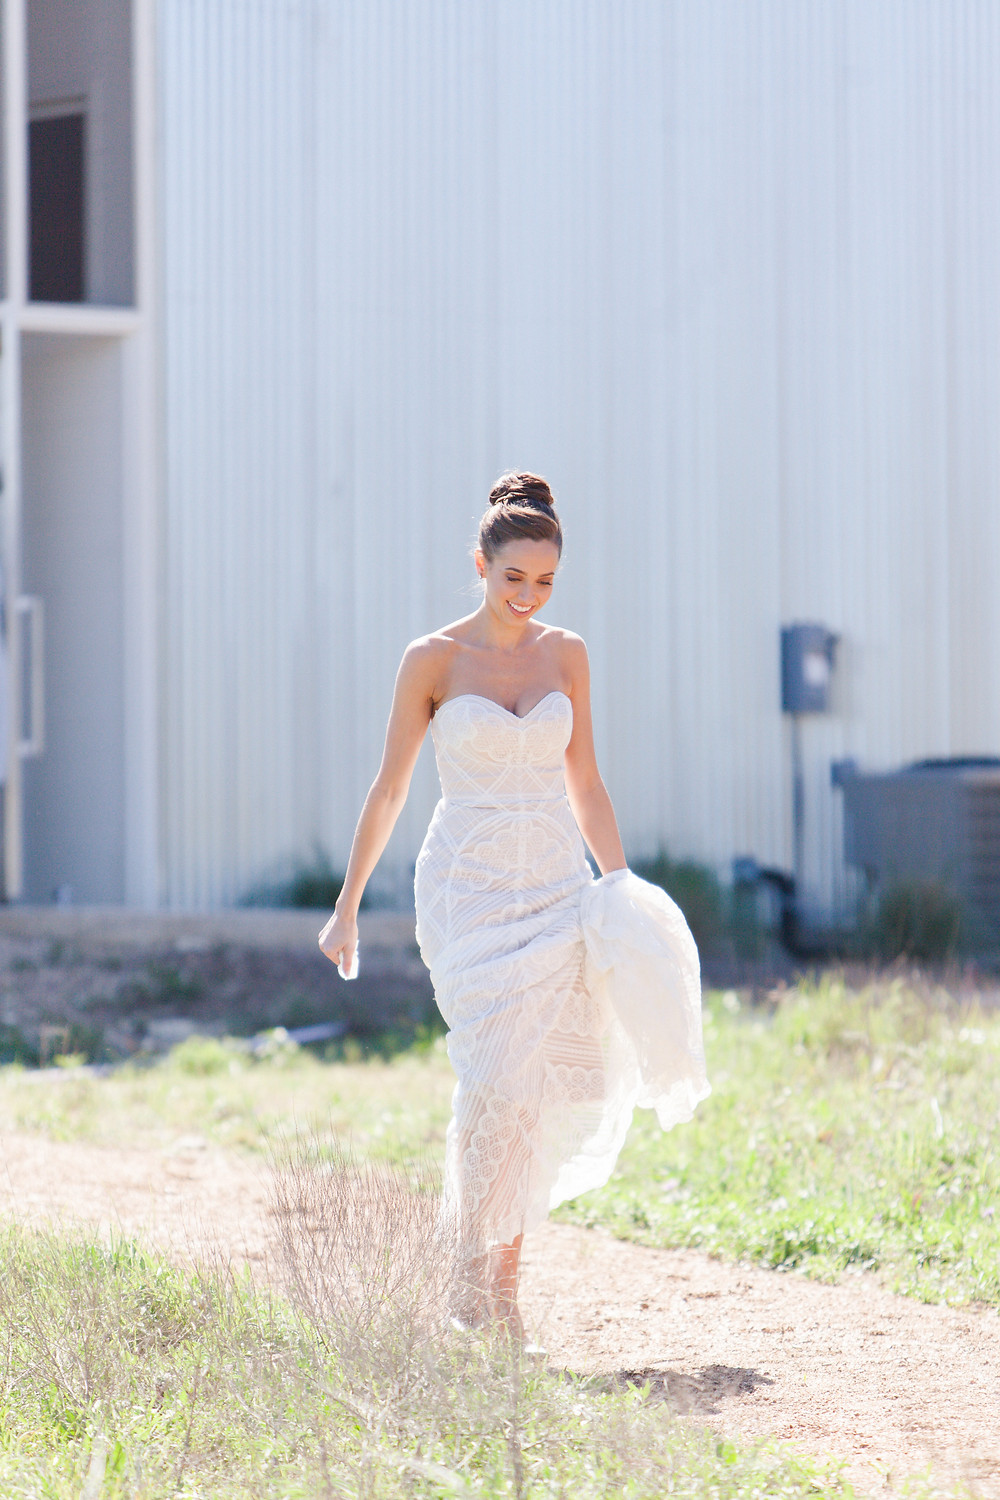 Eclipse Event Co, Mekina Saylor Photo, Crochet Dress on Bride